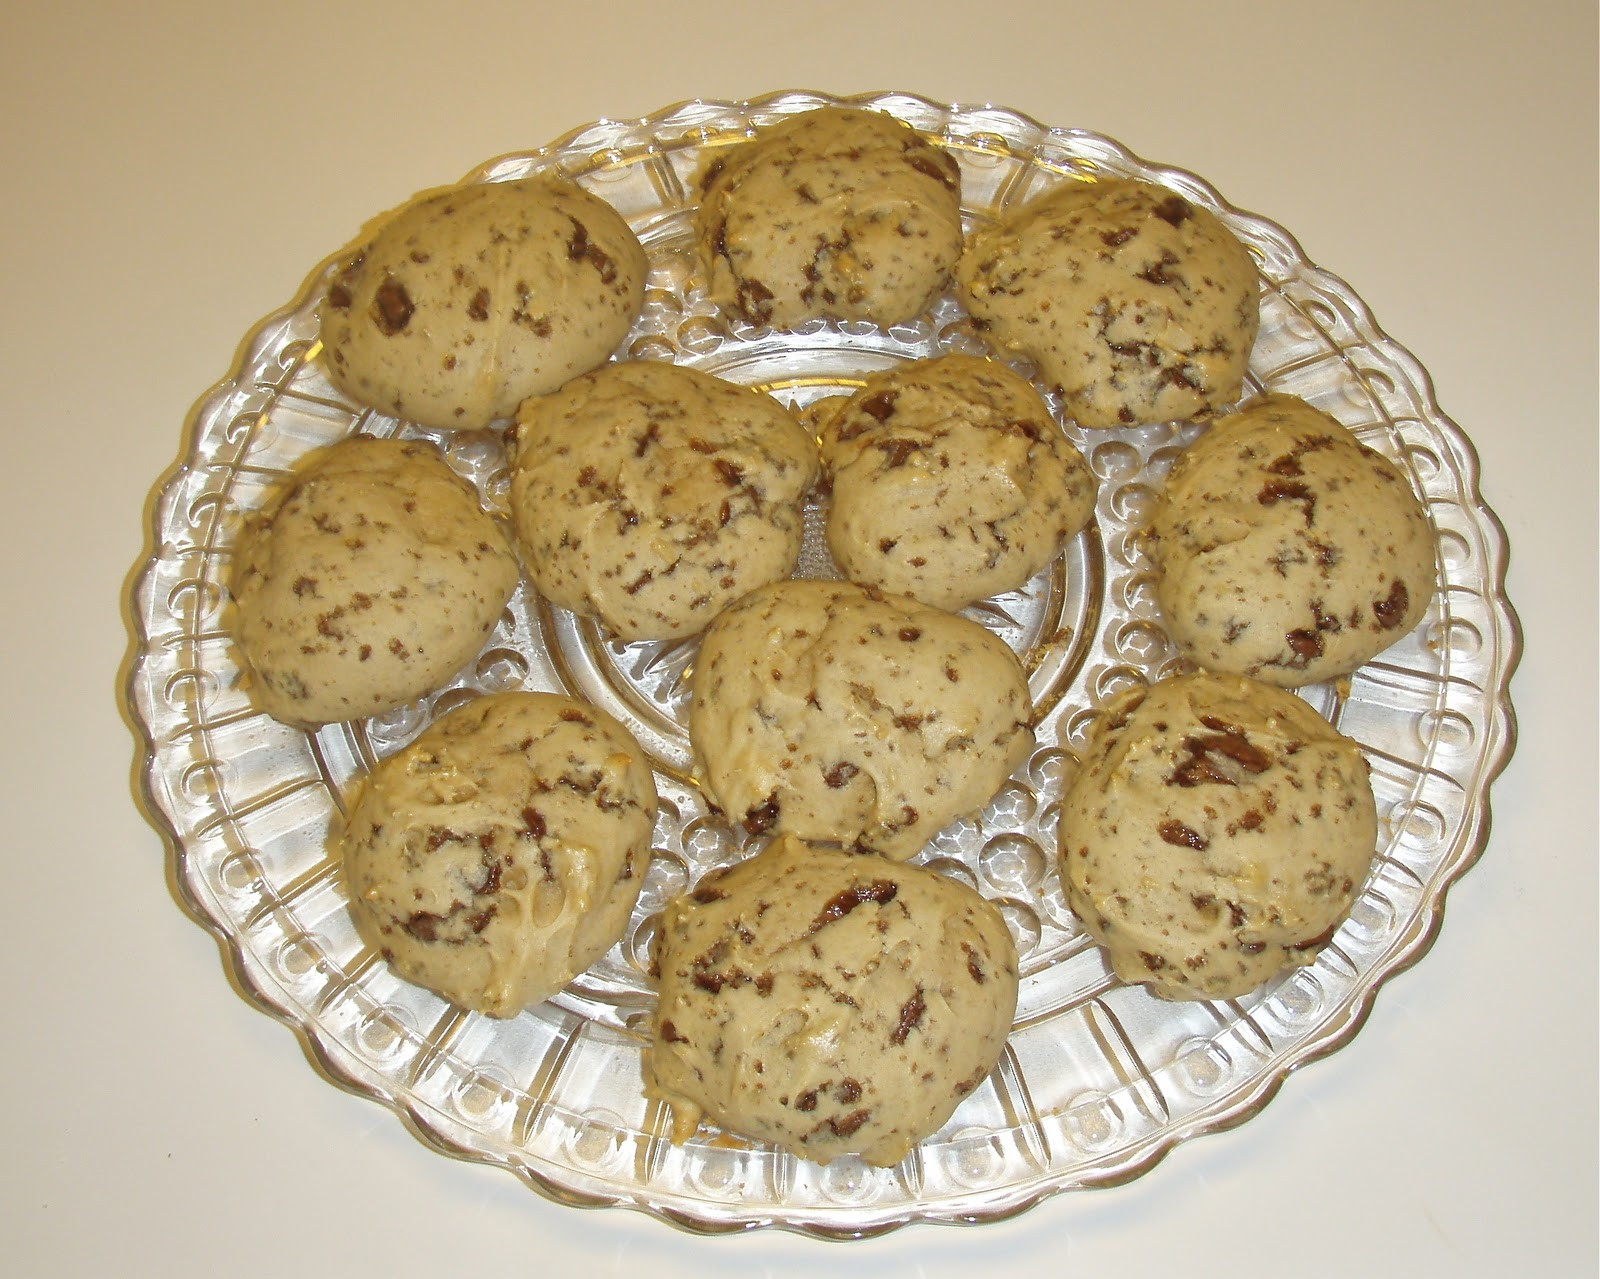 Diabetic Chocolate Chip Cookies Recipe  Points In My Life Low Point Diabetic Chocolate Chip Cookies